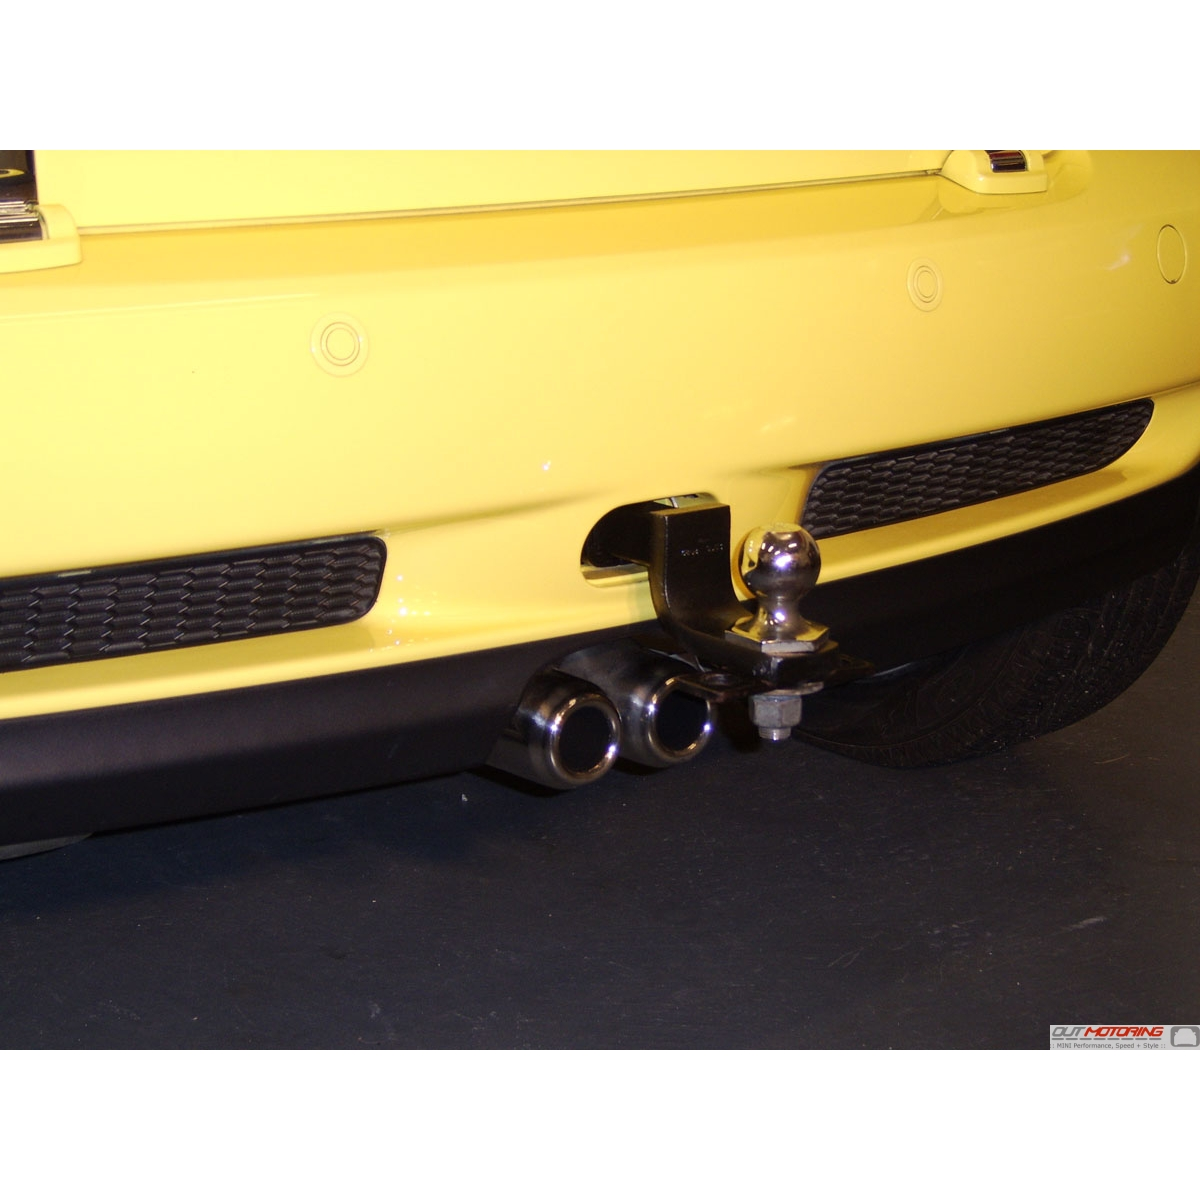 Mdm 1003 Mini R53 Hatchback S R52 Convertible S Towing